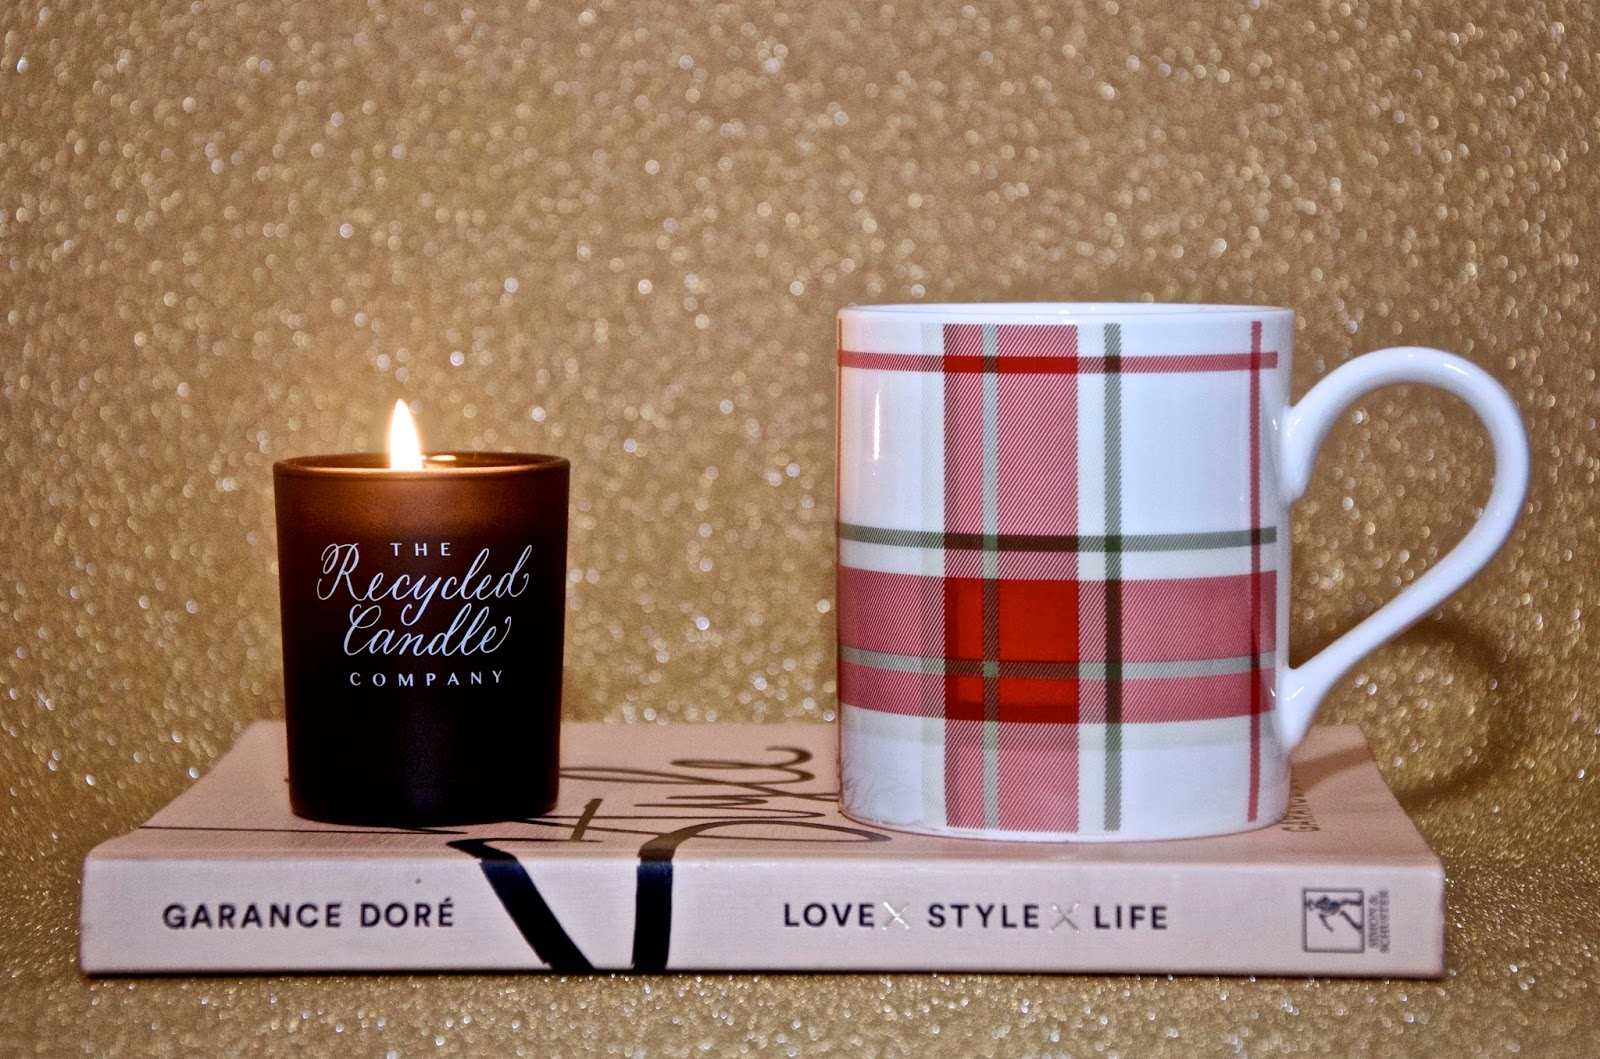 Recycled Candle Company votive candle, plaid coffee mug and Garance Dore Book